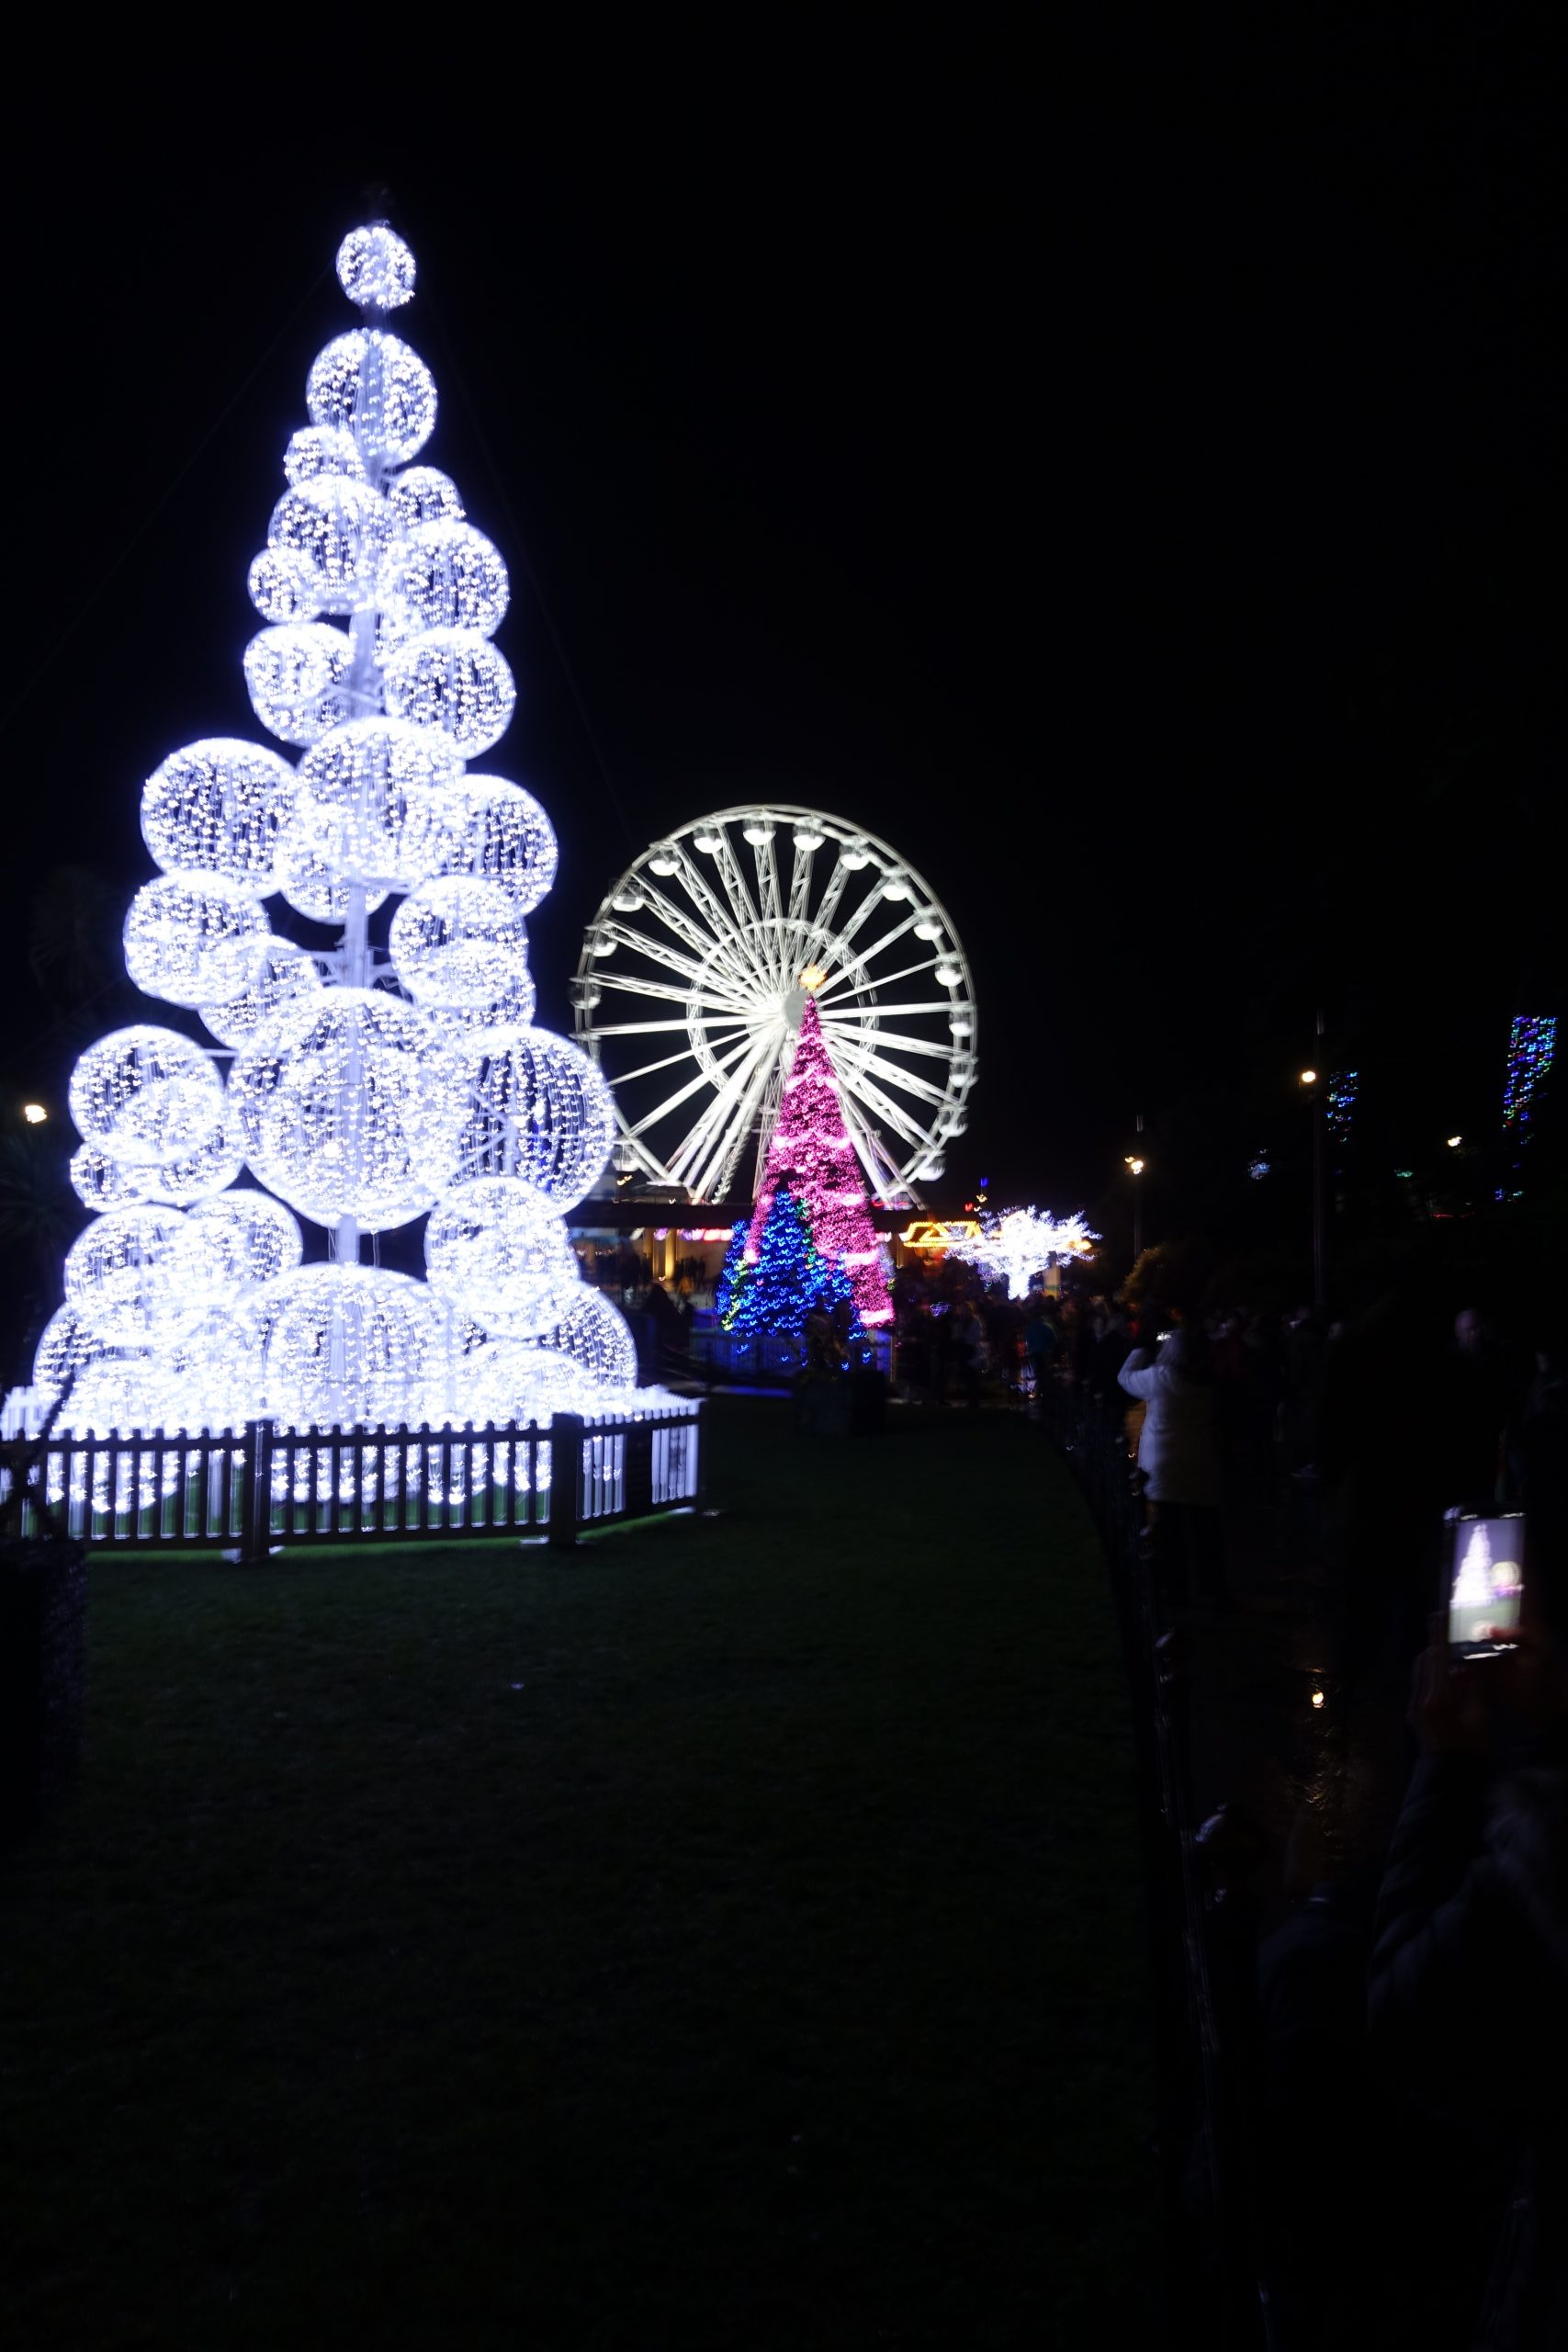 Bournemouth Christmas Tree Wonderland - photo by Juliamaud